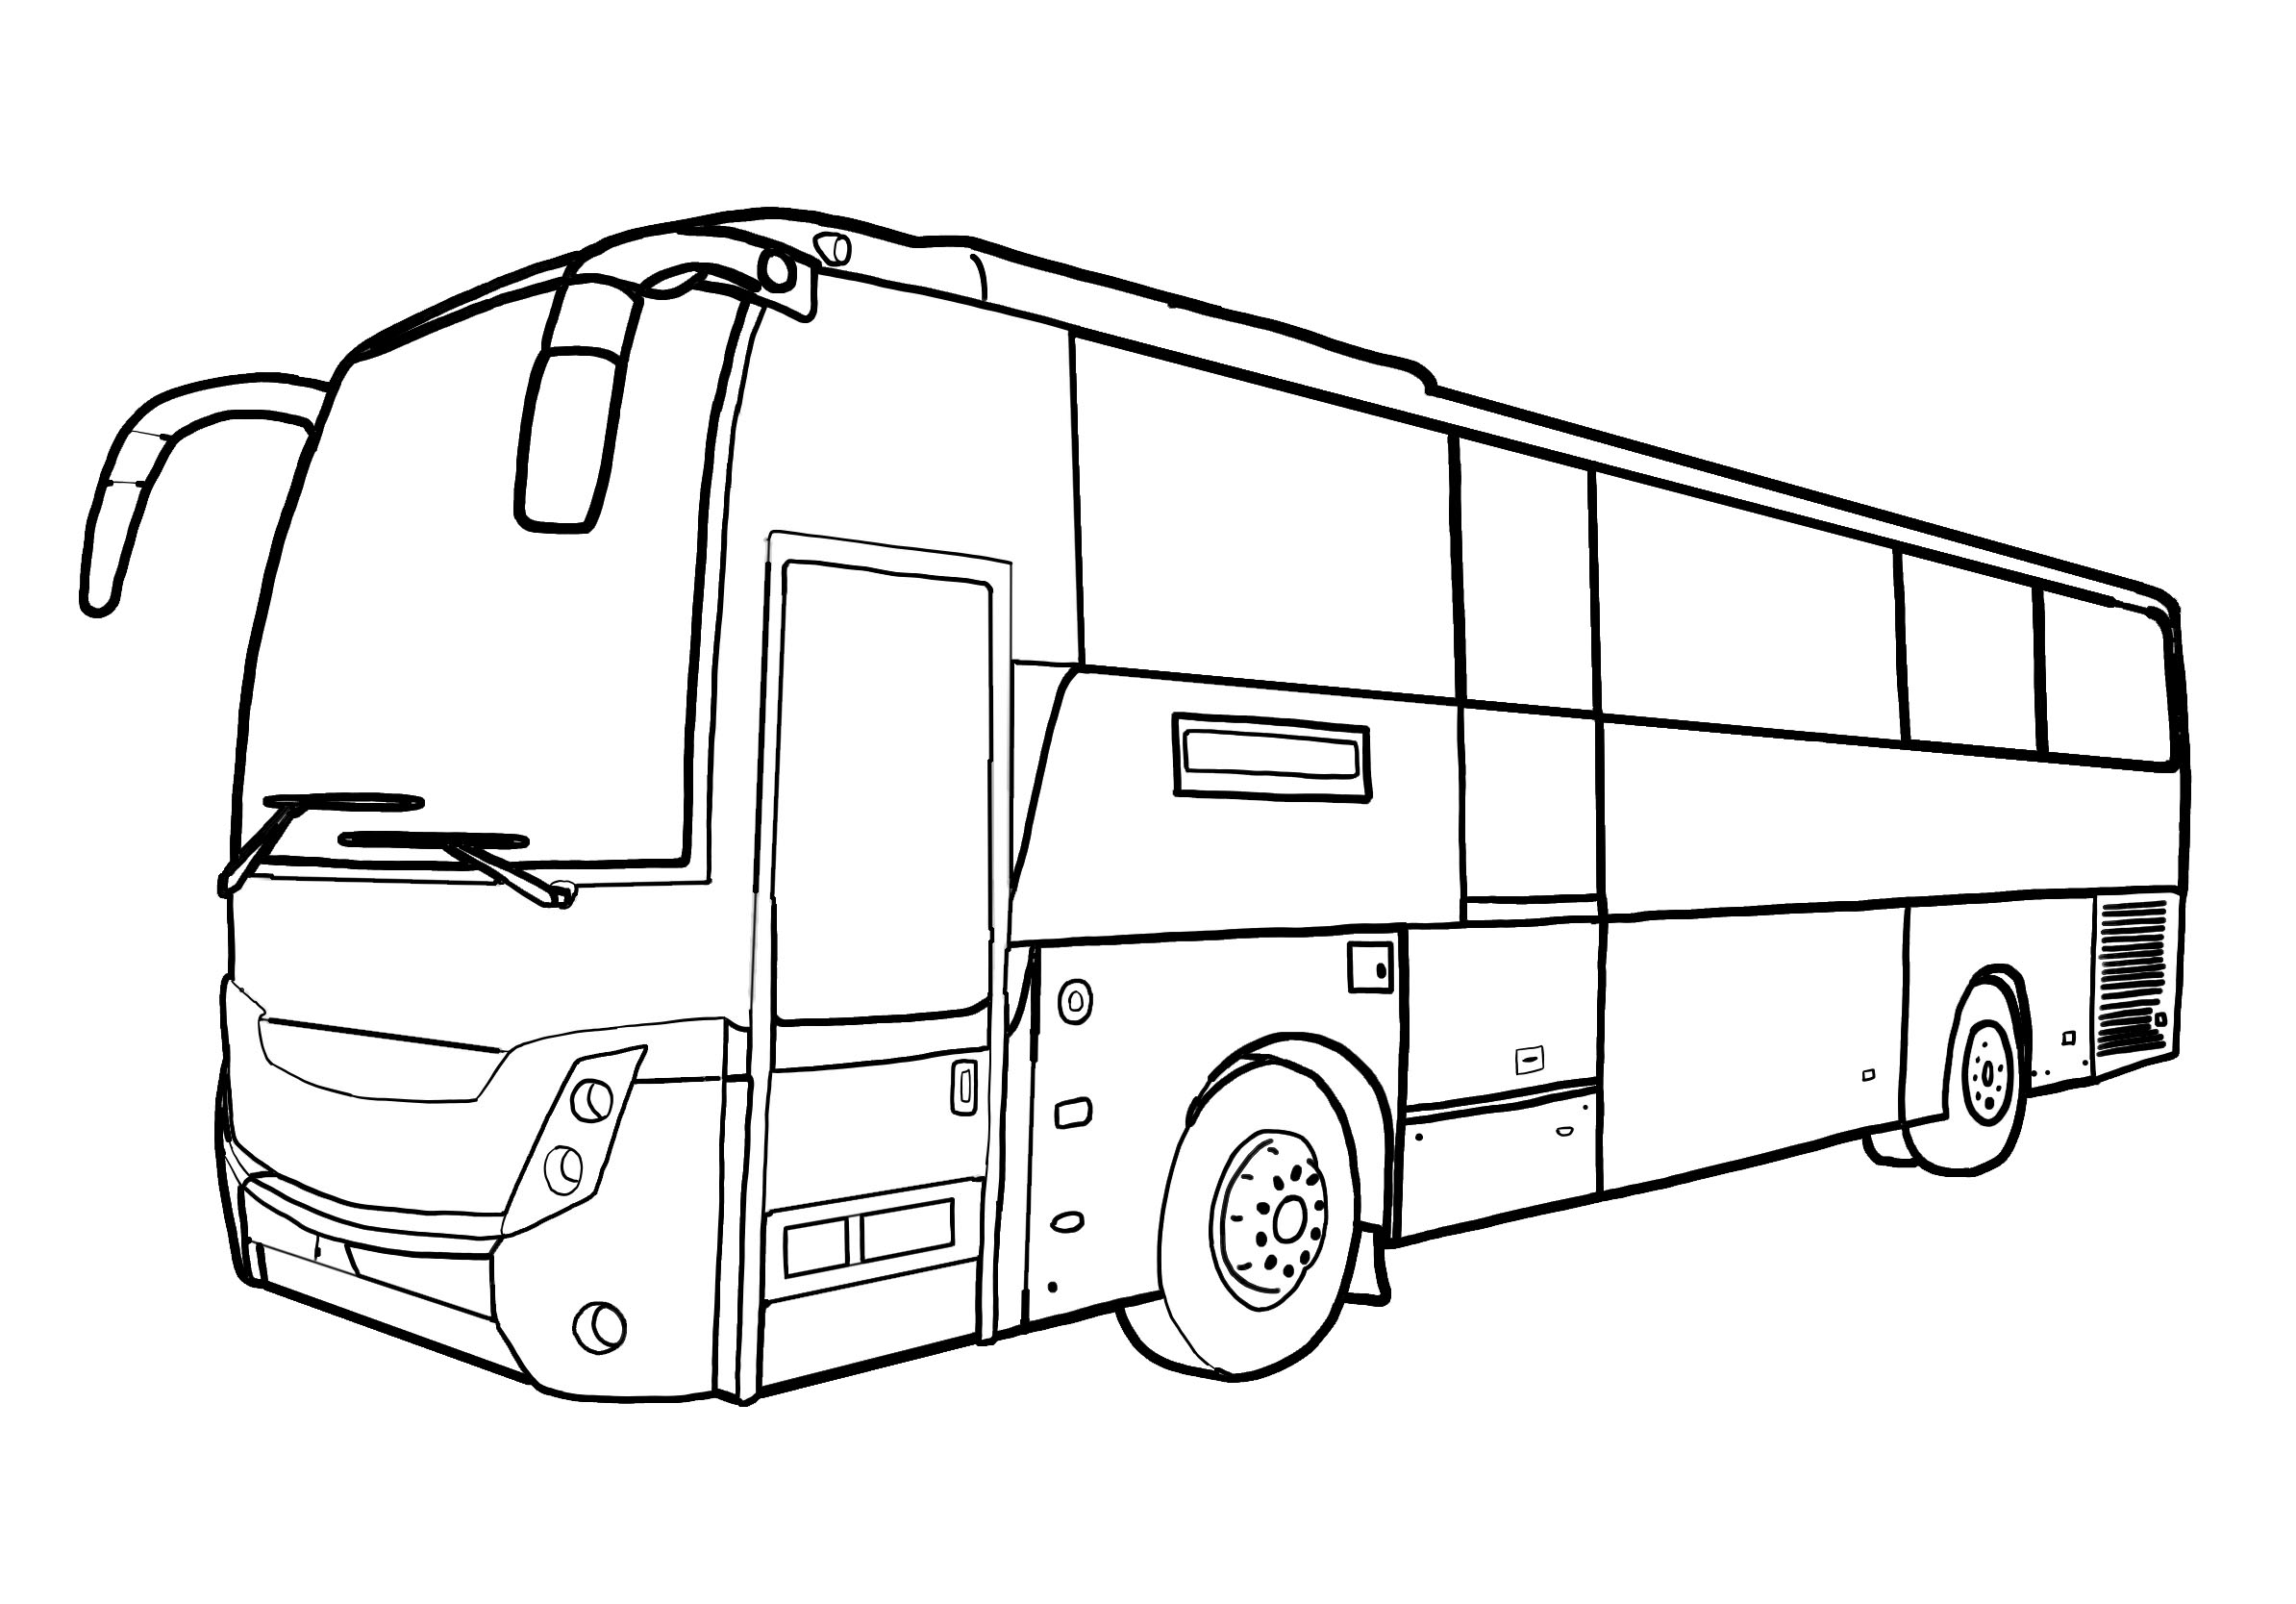 Image of Bus